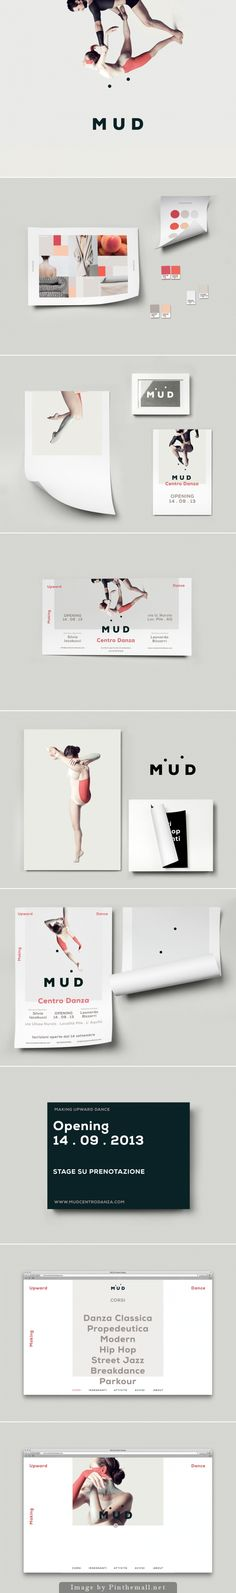 M.U.D / Art Direction and Graphic Design for M.U.D Dance Centre by The Clocksmiths #graphicdesign #collateral